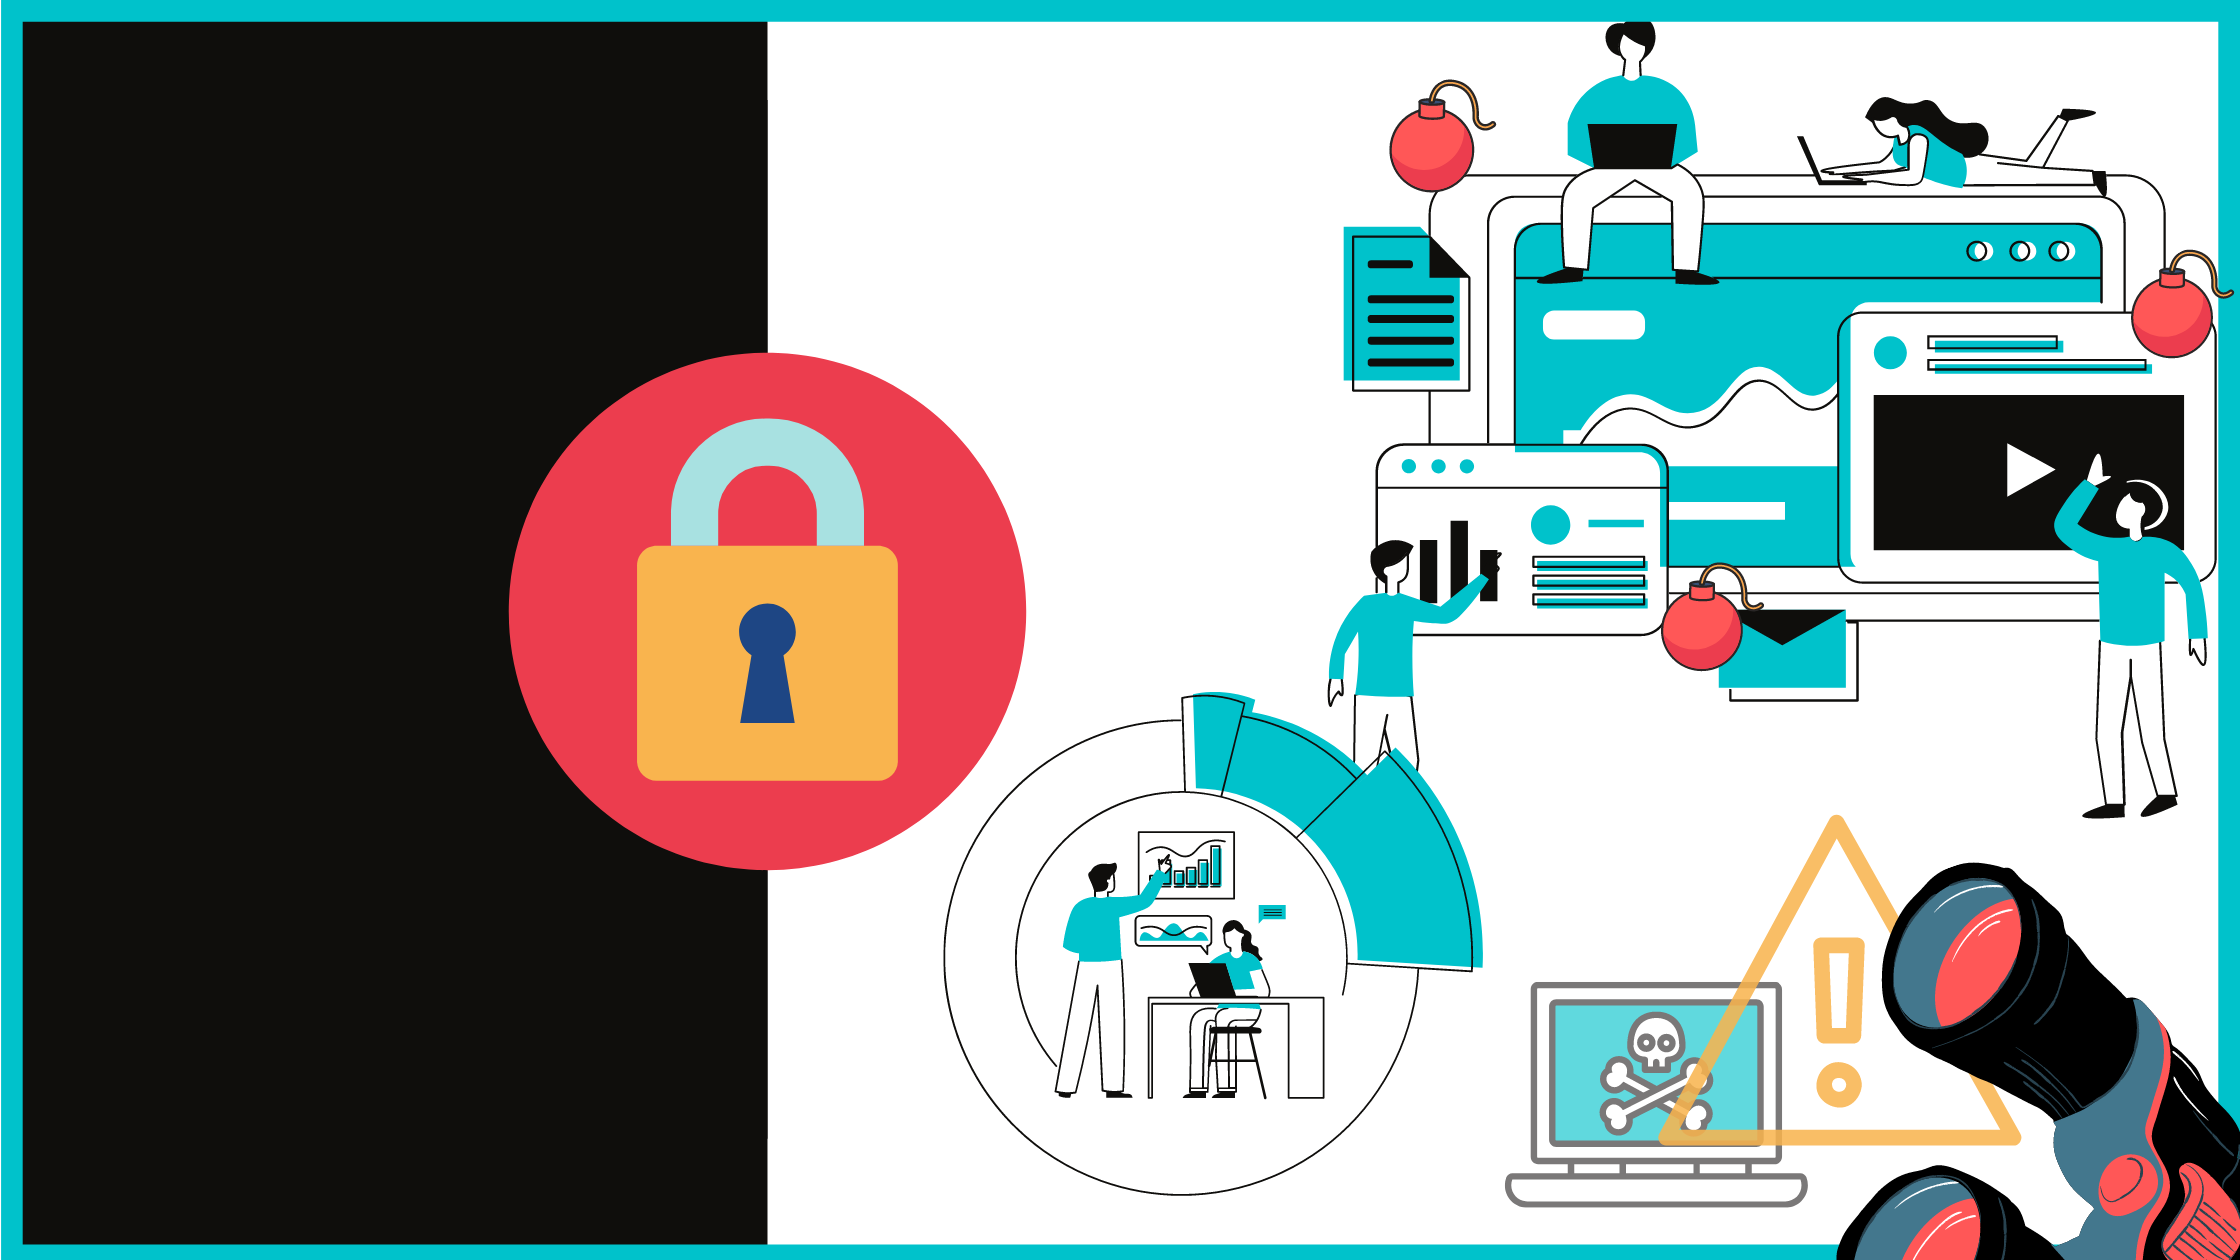 Ensuring security for remoteworkers